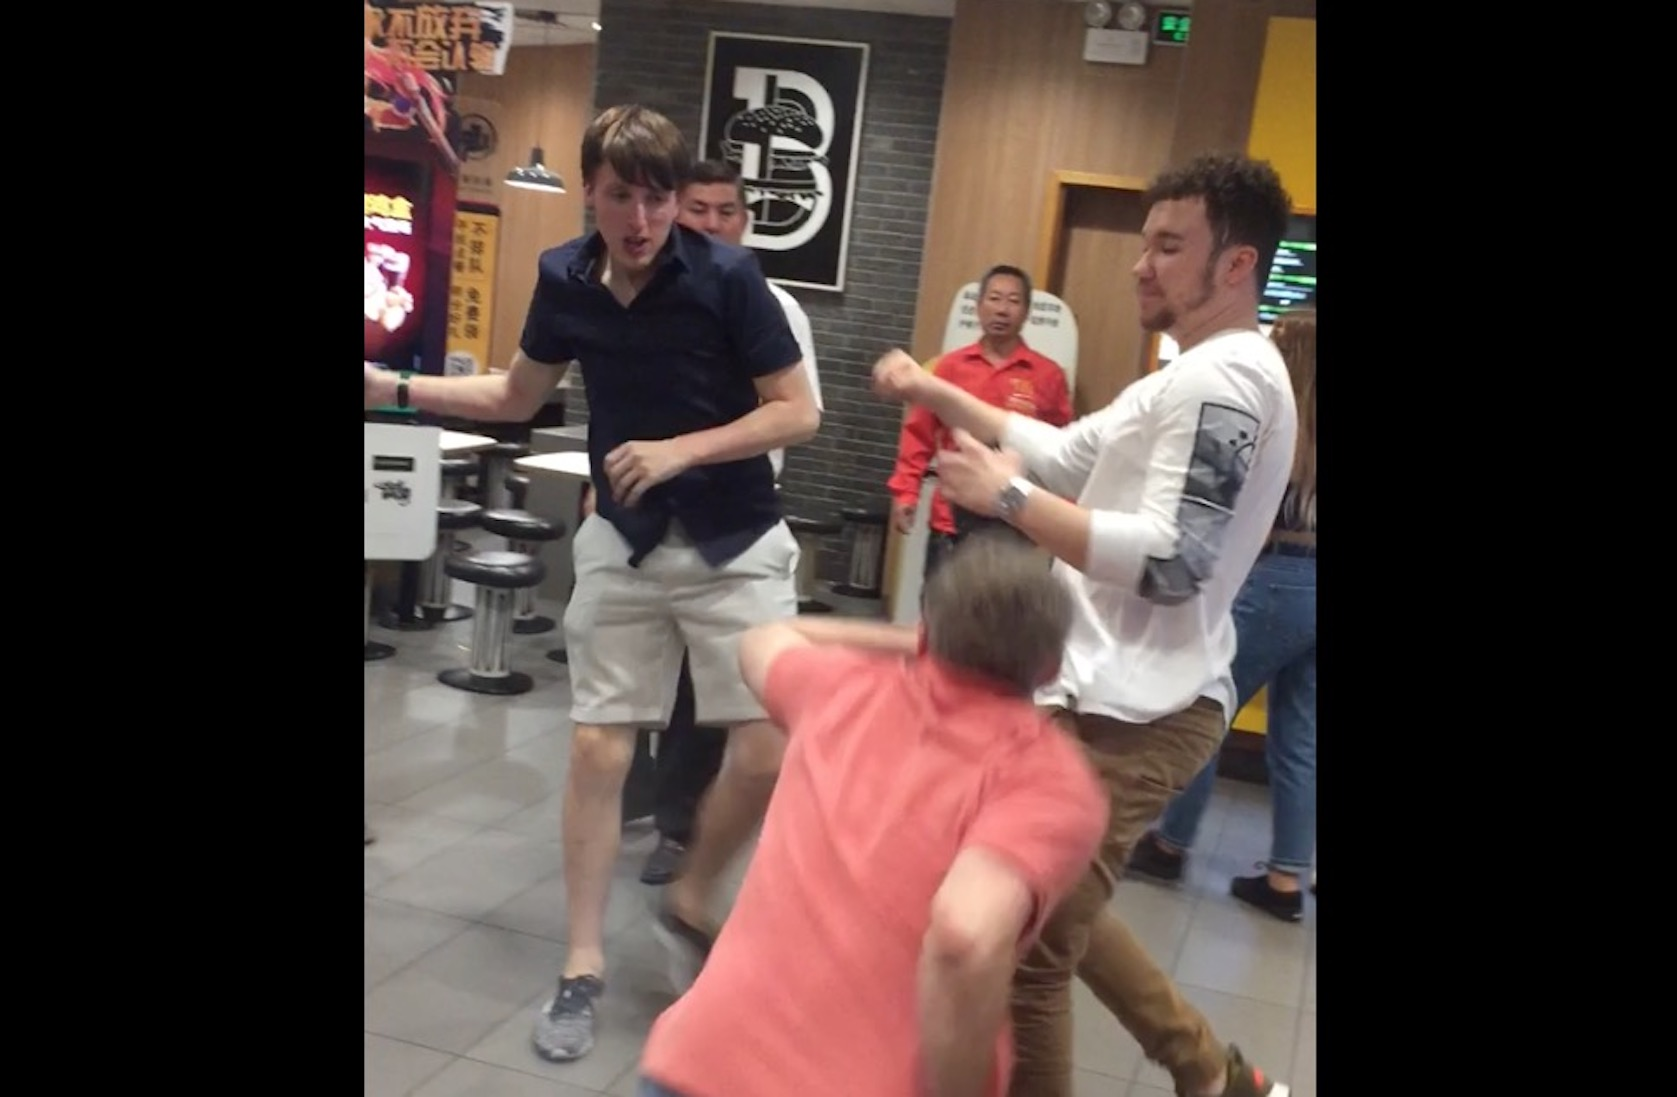 Drunken Fight Among Expats at a Shenzhen McDonald's Goes Viral